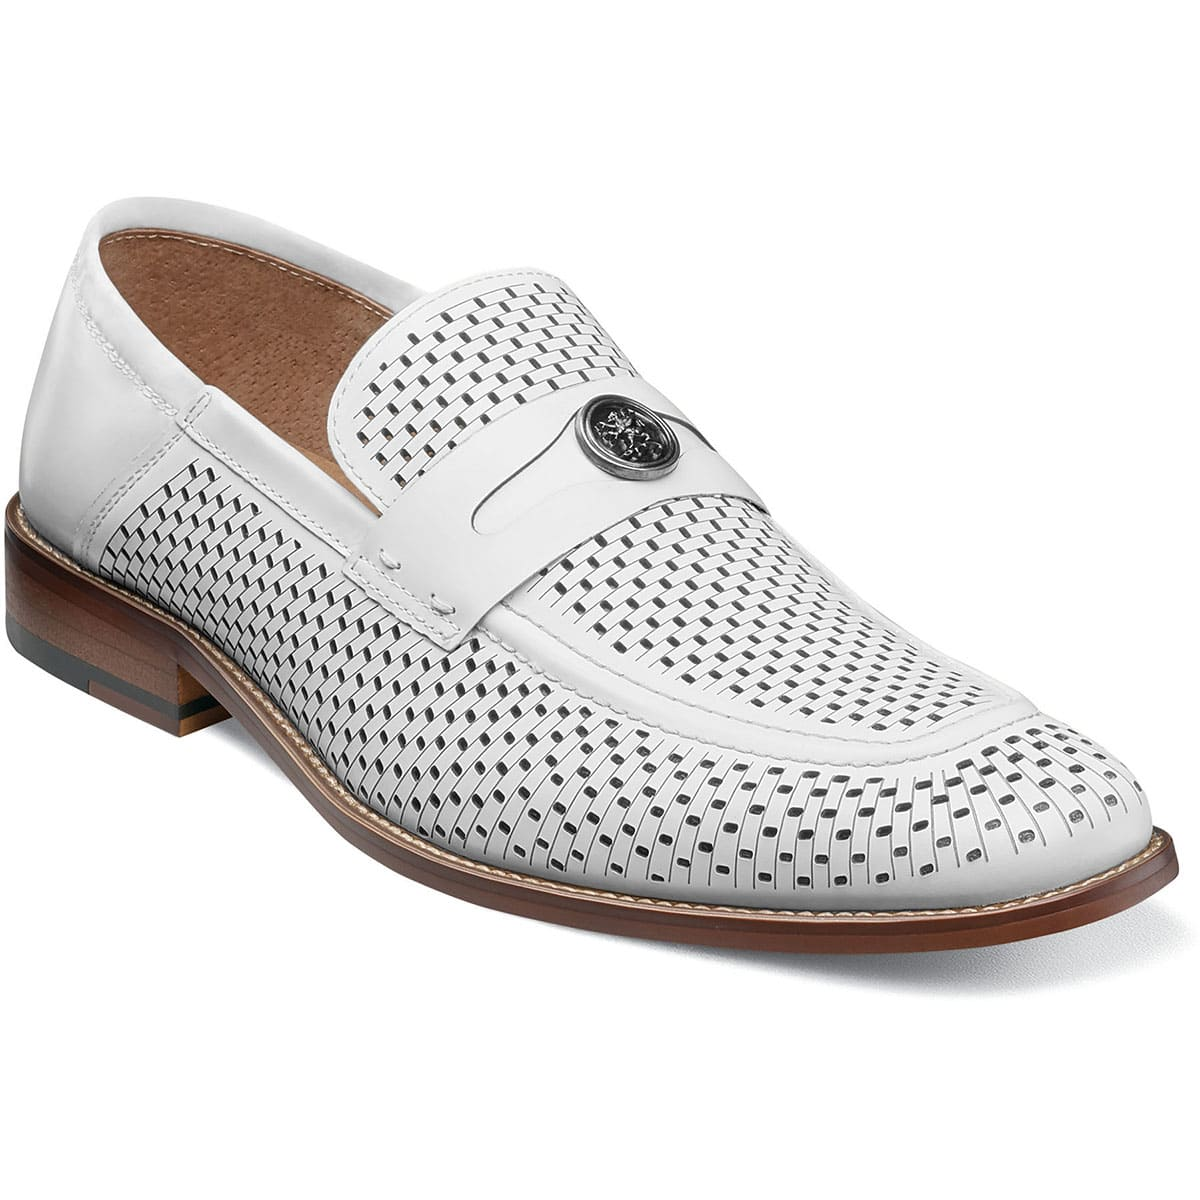 Belmiro Moc Toe Ornament Slip On - Dapperfam.com